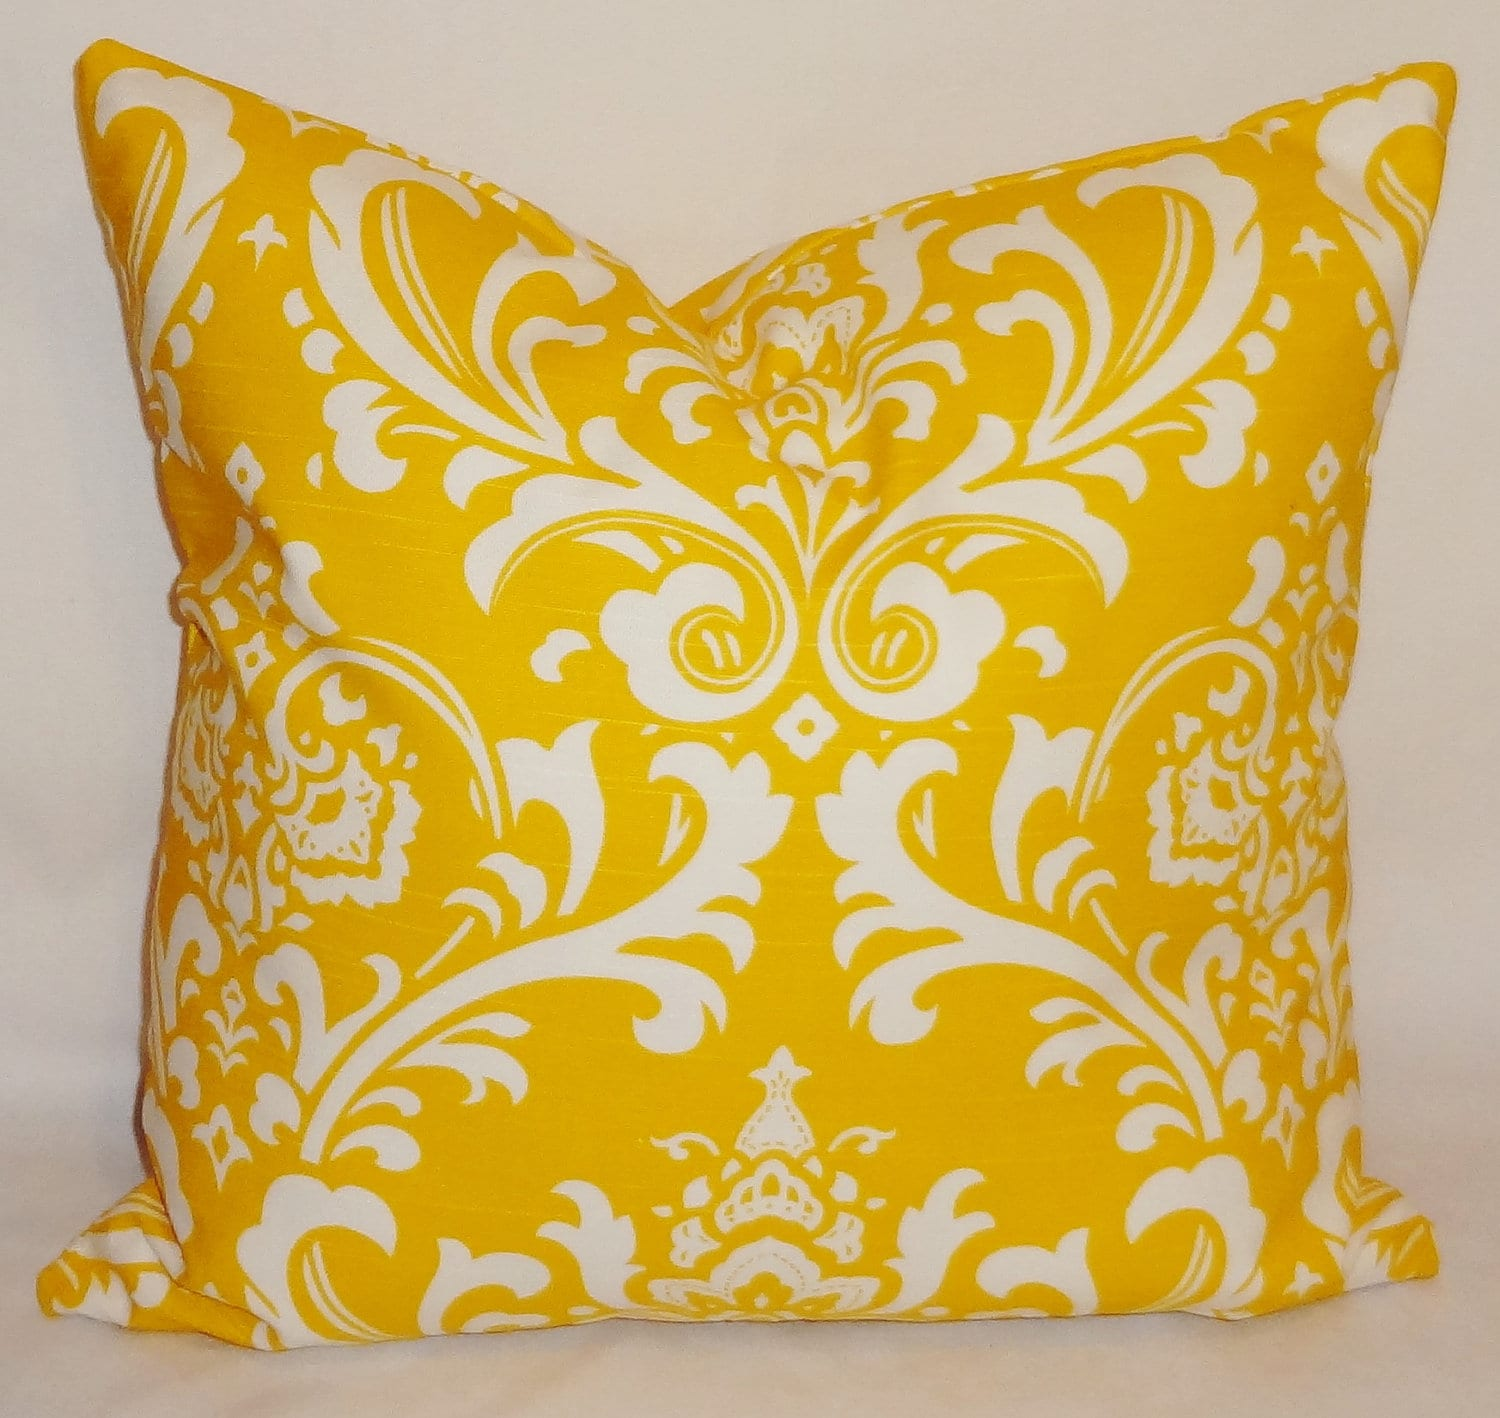 Decorative Pillows Corn Yellow & White Damask Pillow by HomeLiving